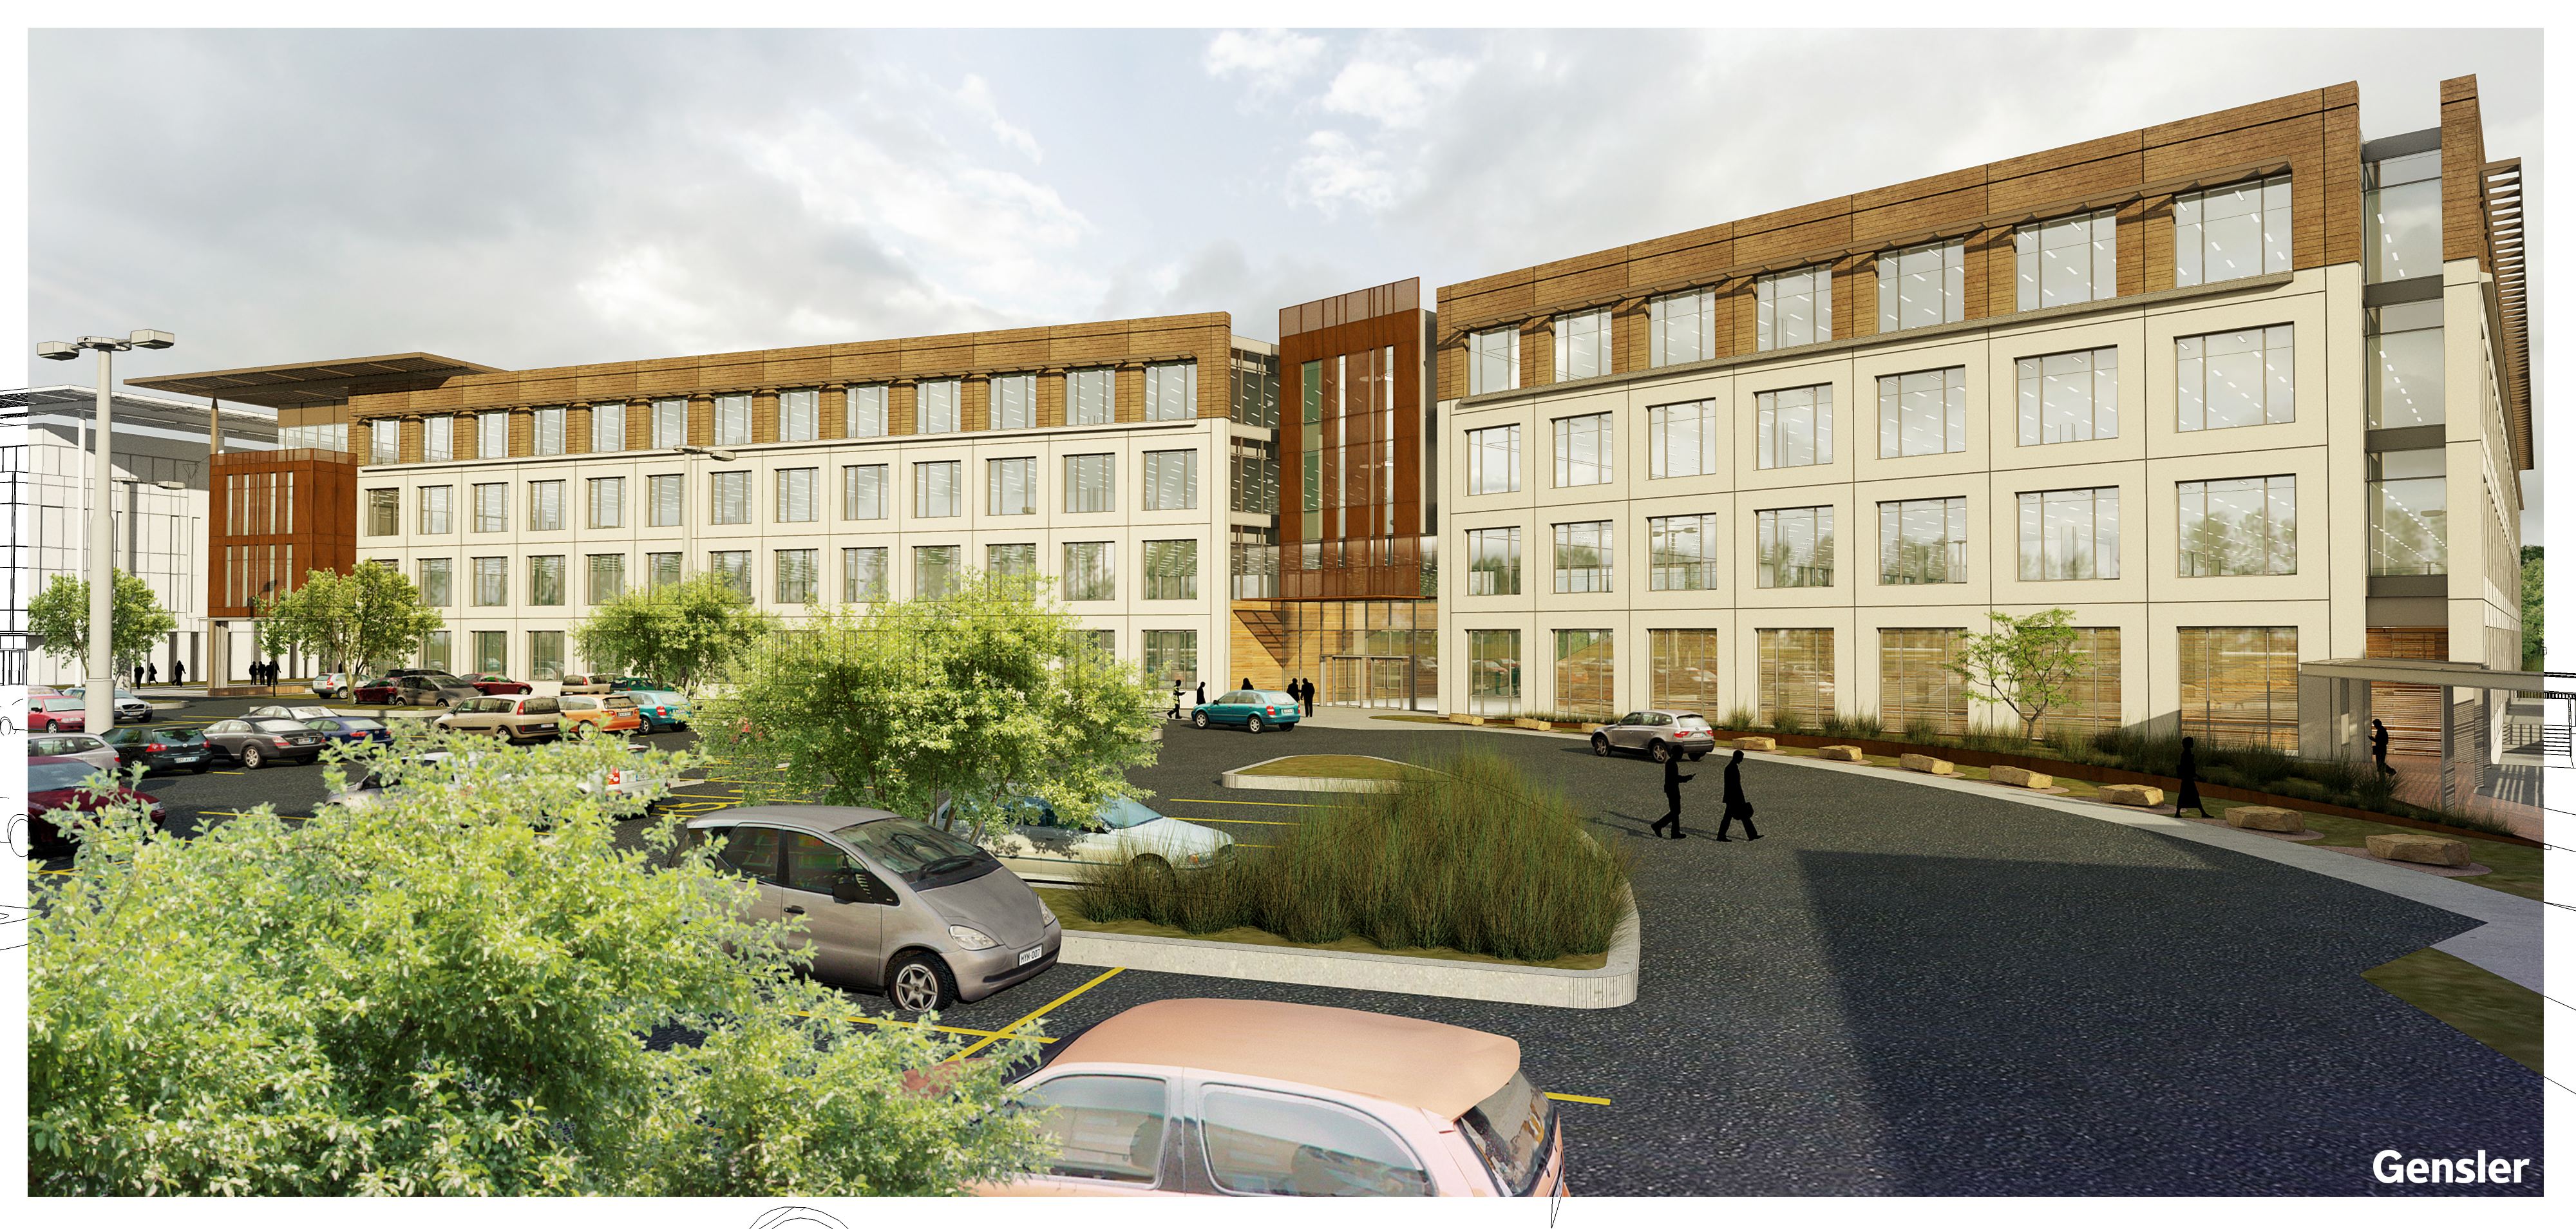 AmerisourceBergen breaks ground on Carrollton campus that'll house